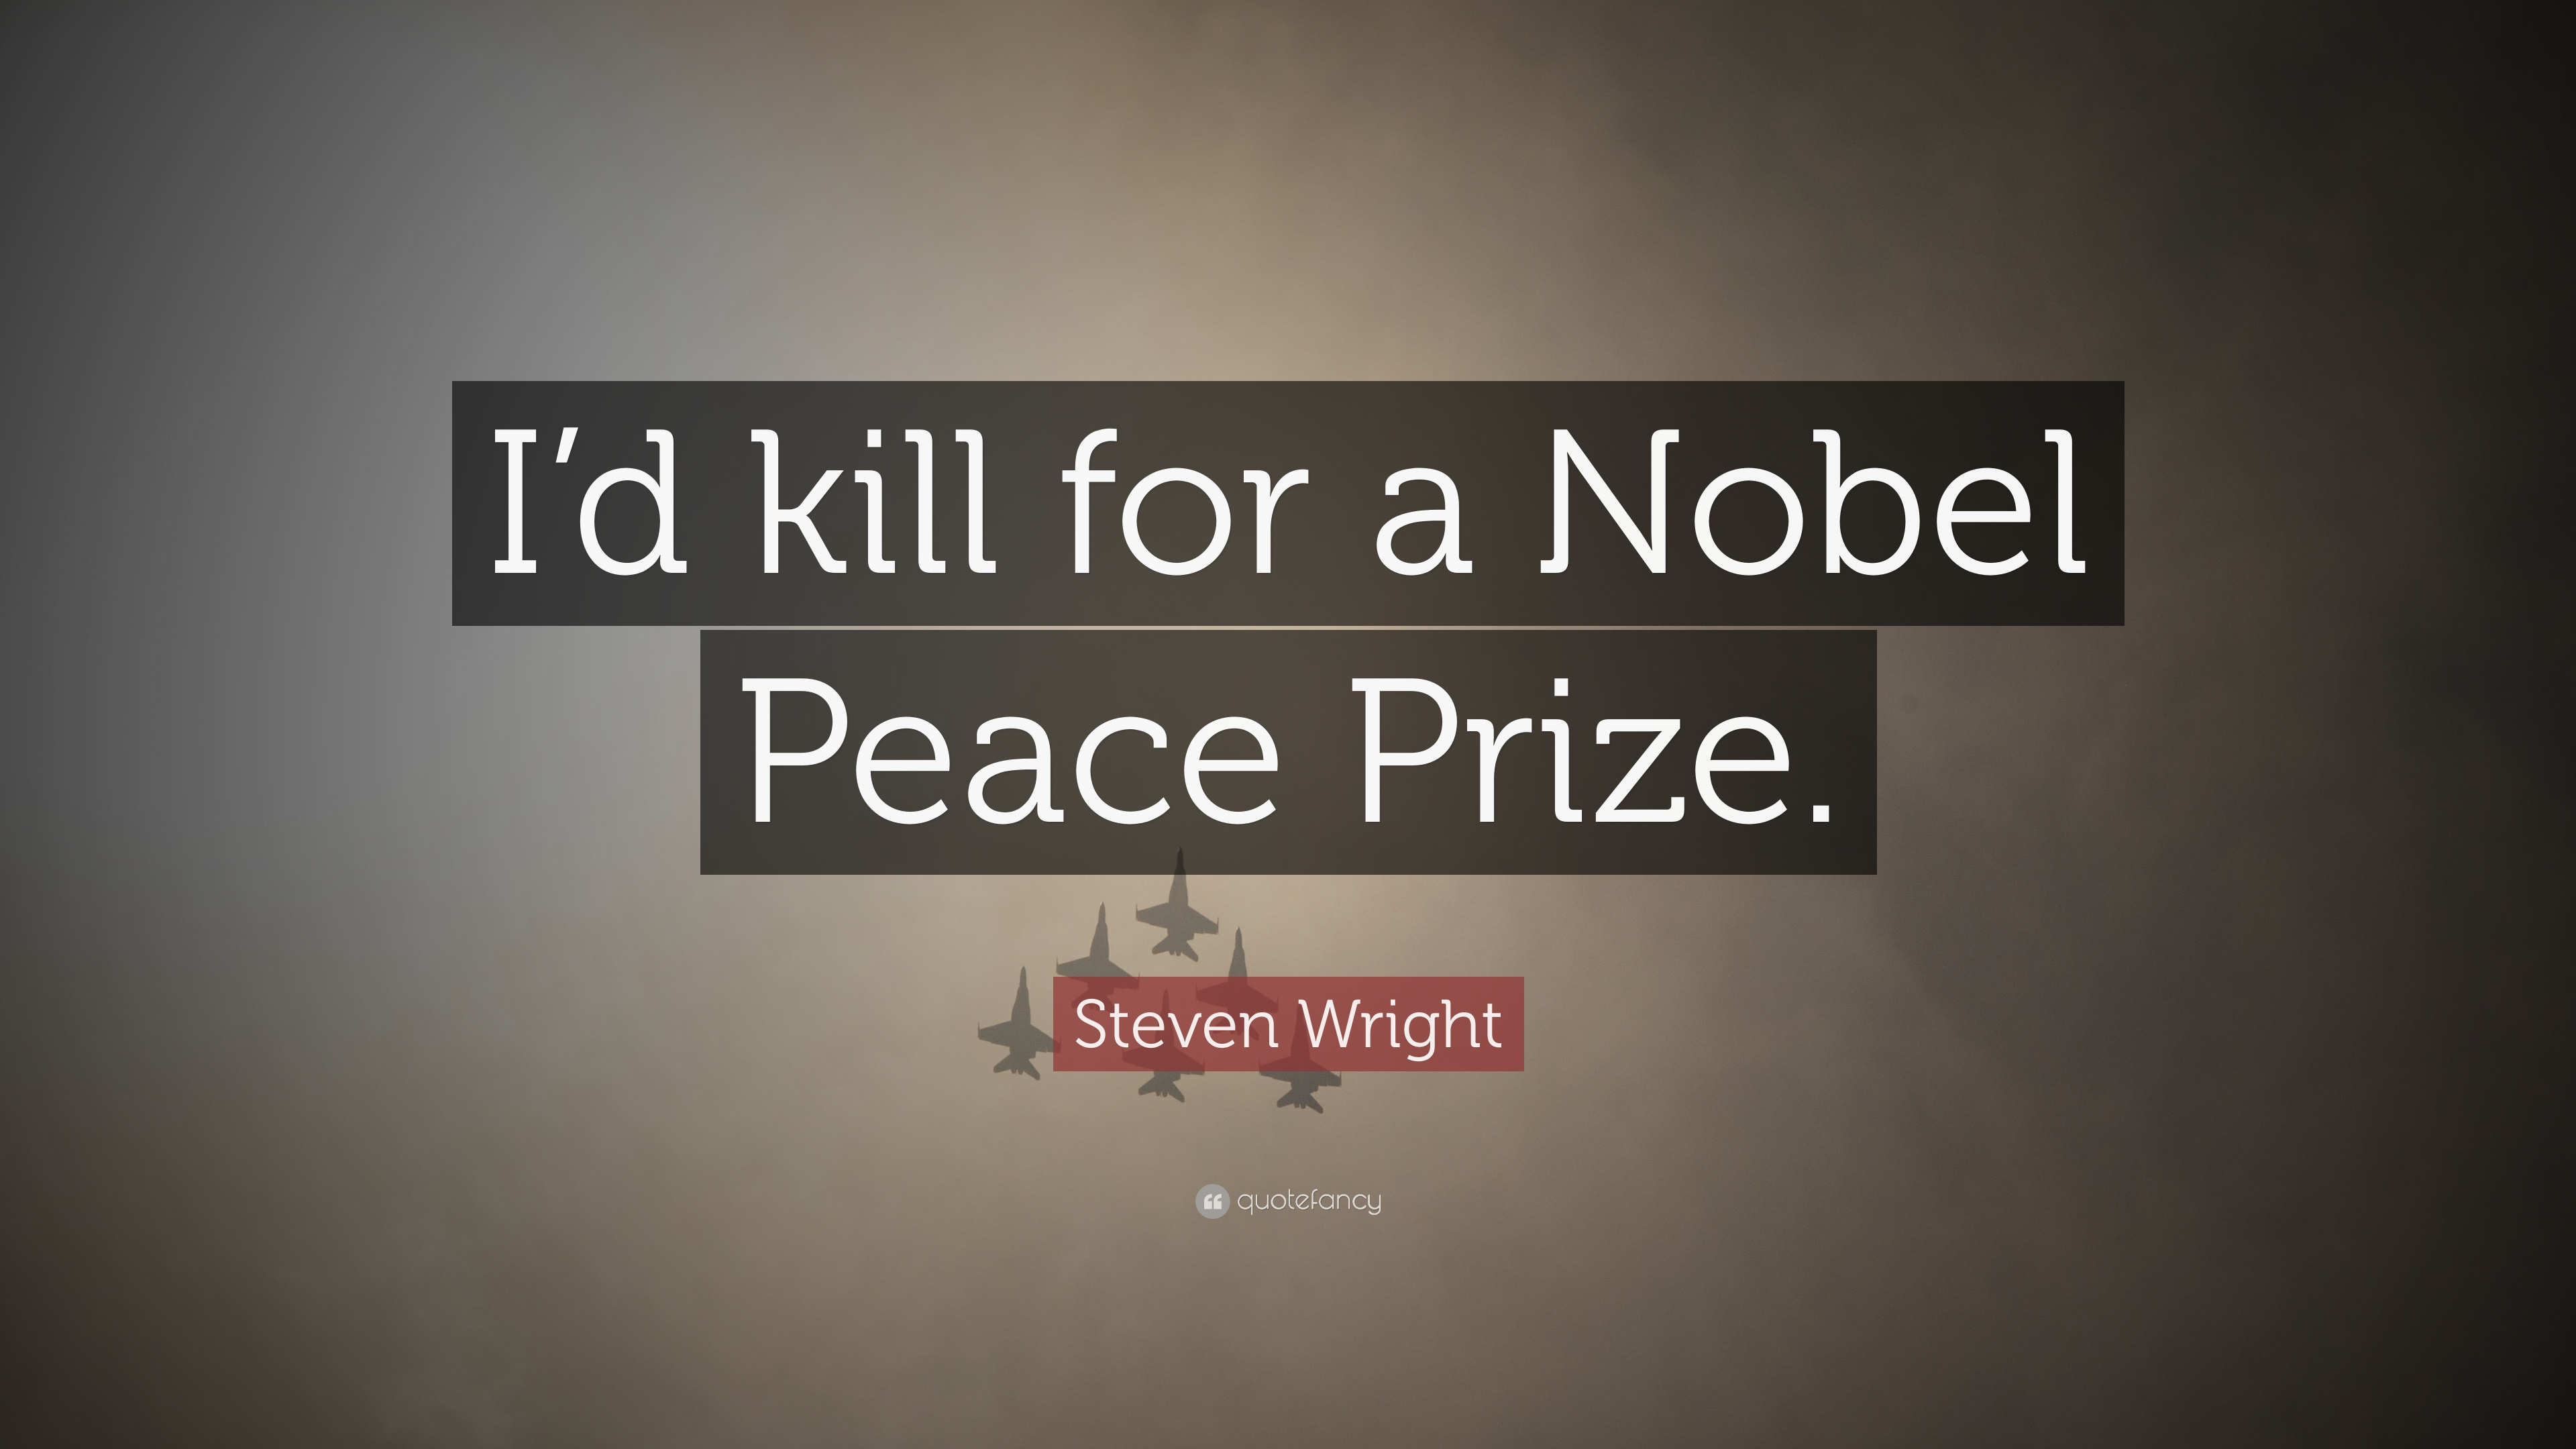 Funny Quotes  26 wallpapers    Quotefancy Funny Quotes     I d kill for a Nobel Peace Prize